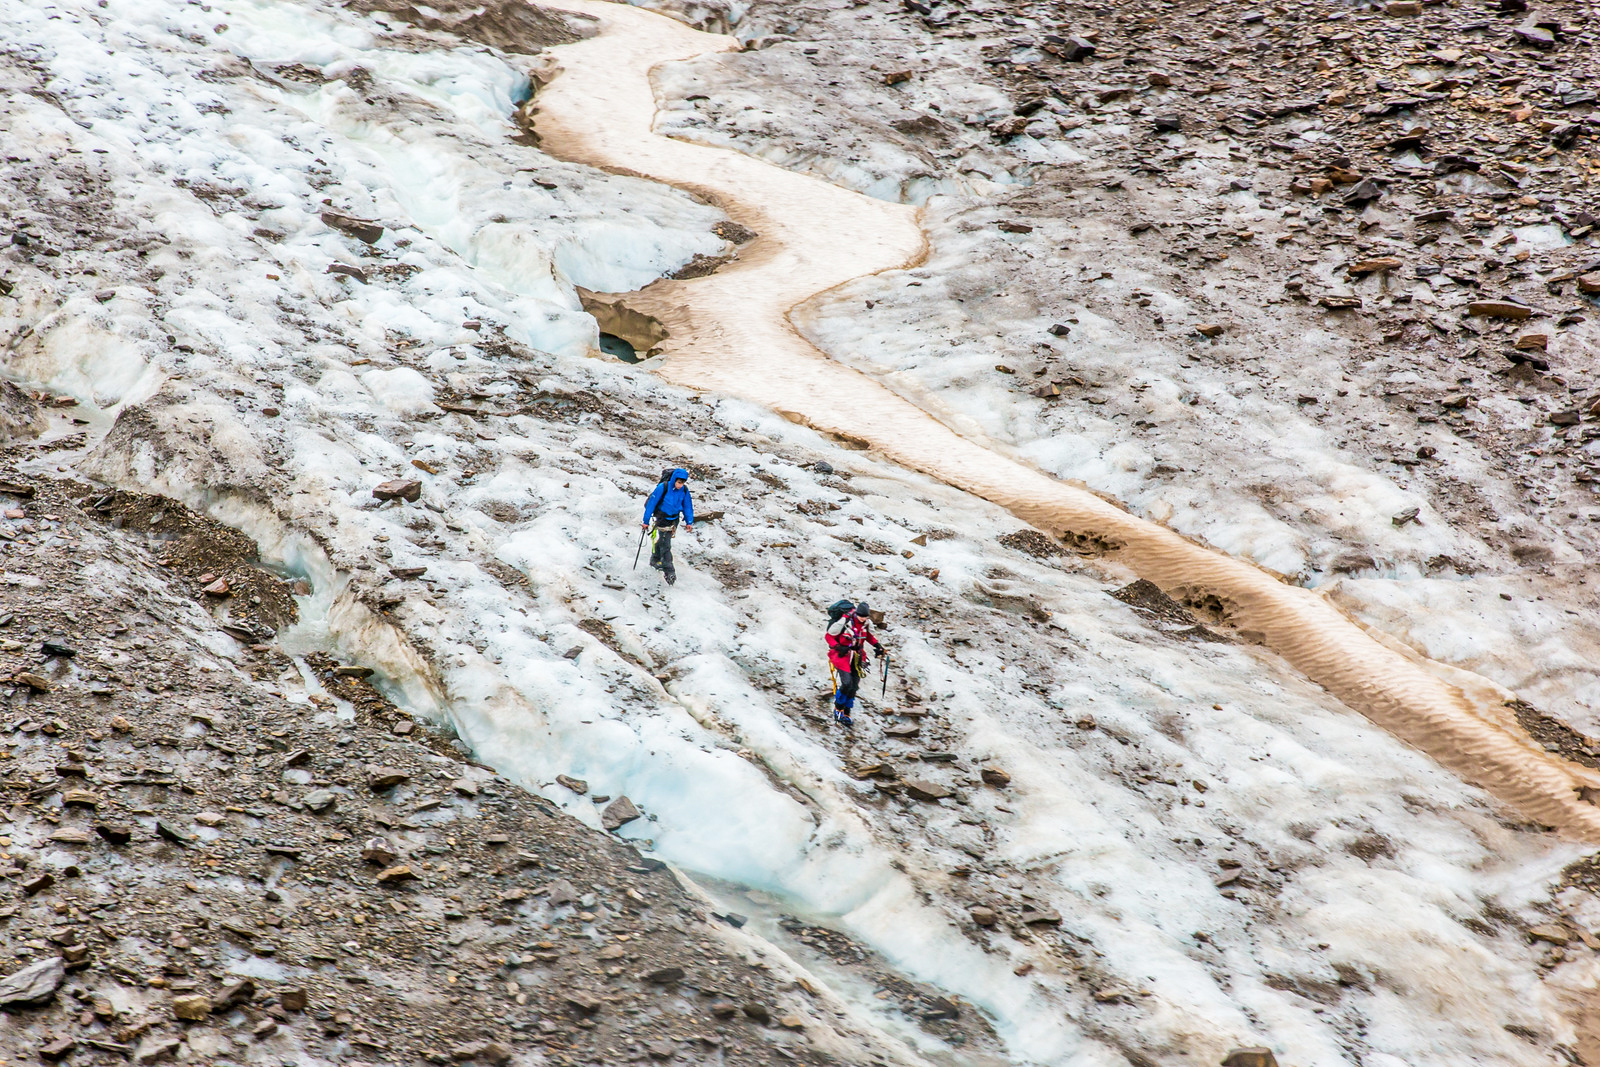 UAF researchers hike between the glacier mass balance stakes on Jarvis Glacier to measure how much snow and ice melted over the summer in 2014. Jarvis Glacier is in the Alaska Range south of Delta Junction. (Todd Paris / UAF)